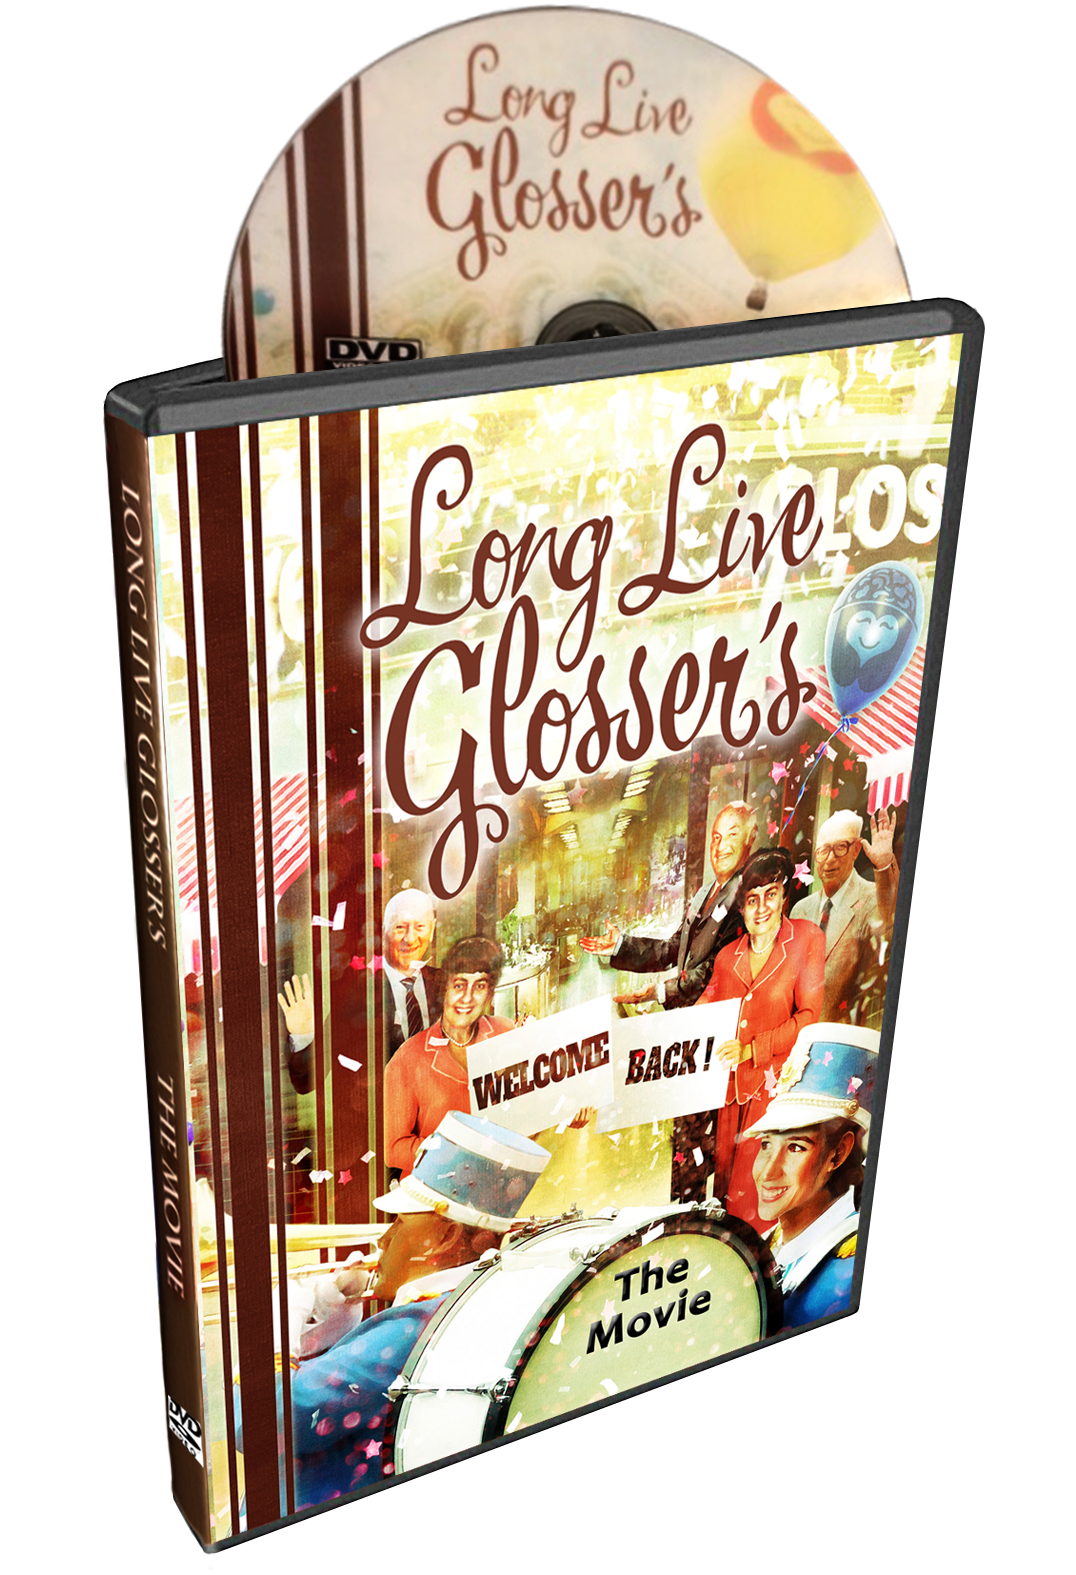 Glossers DVD Case